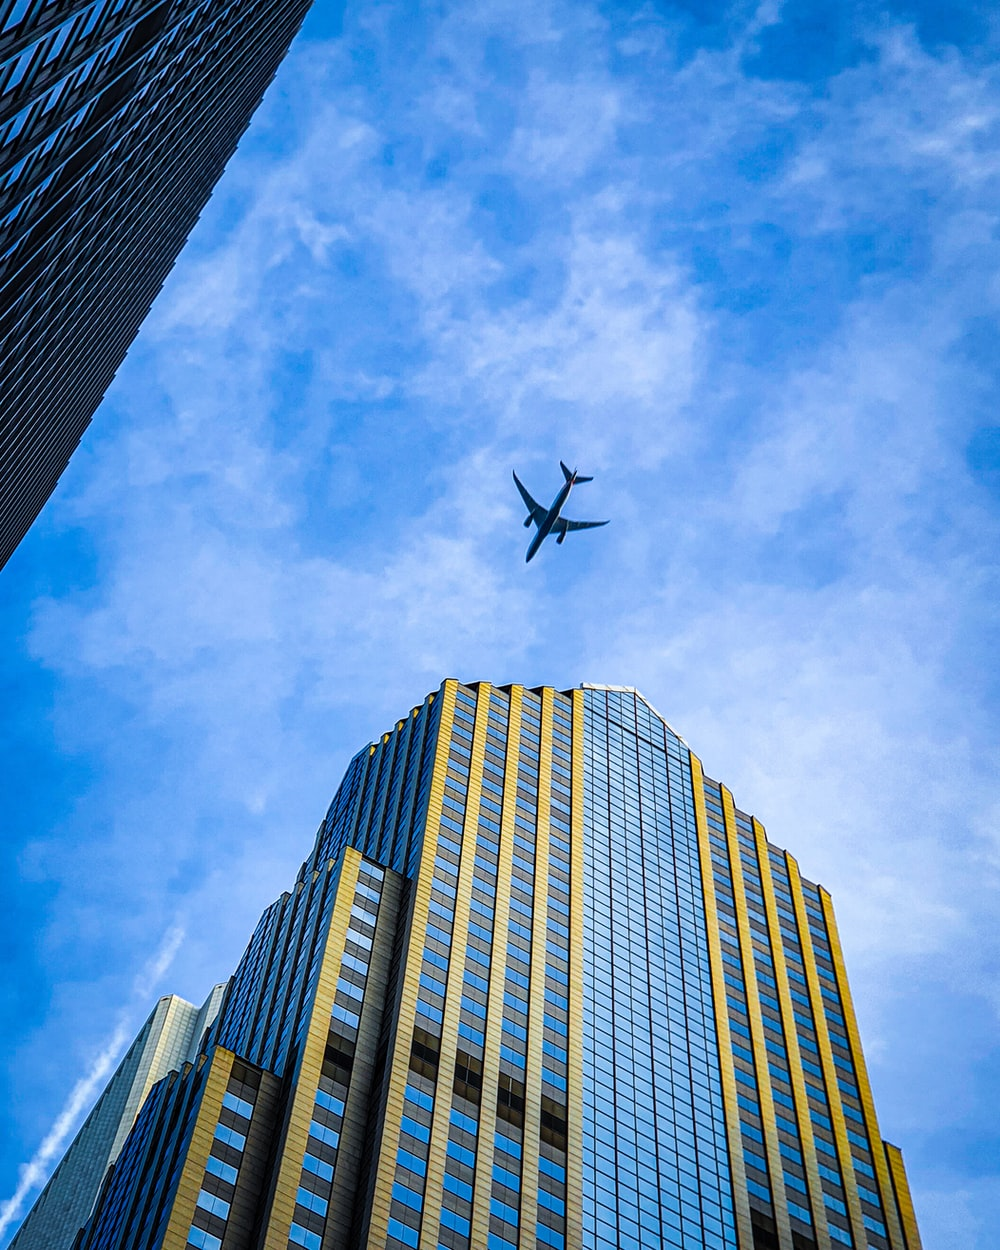 airplane flying over high rise building during daytime